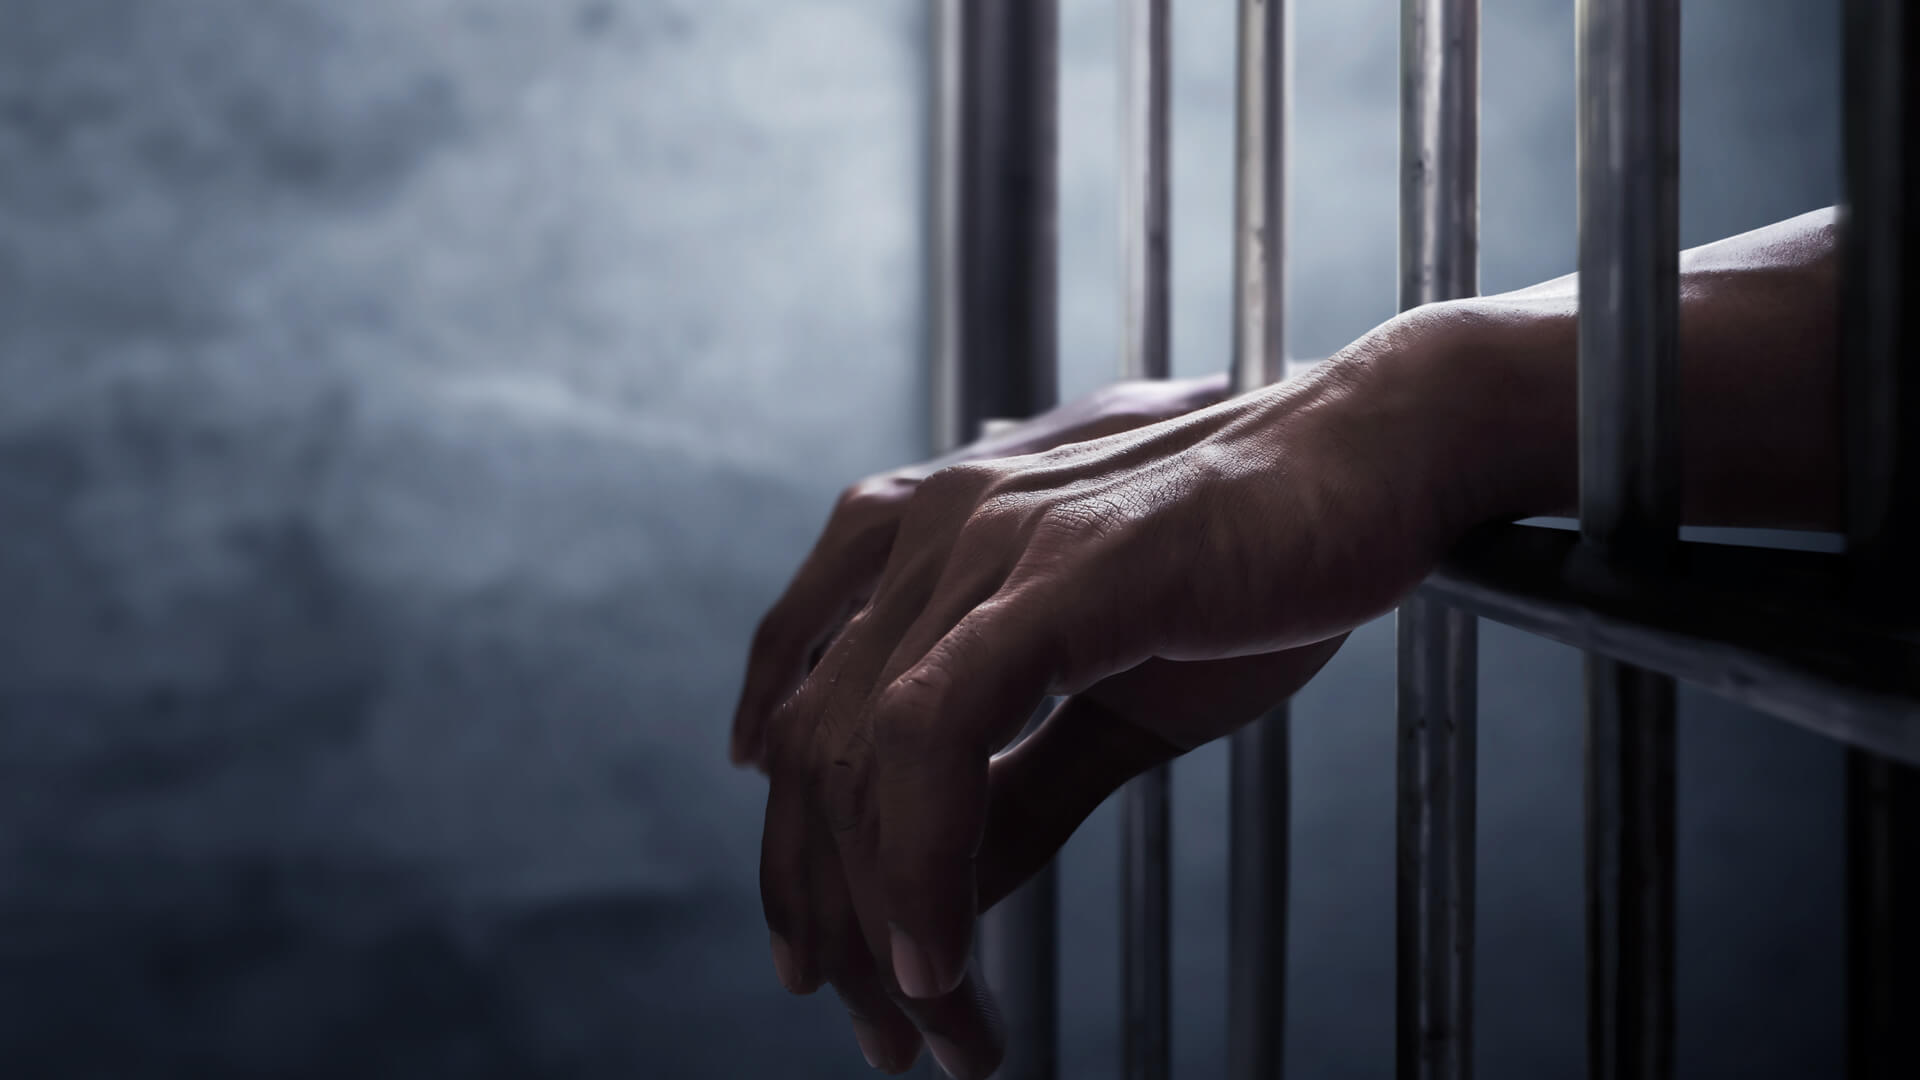 Closeup of Hand going through Prison Bars